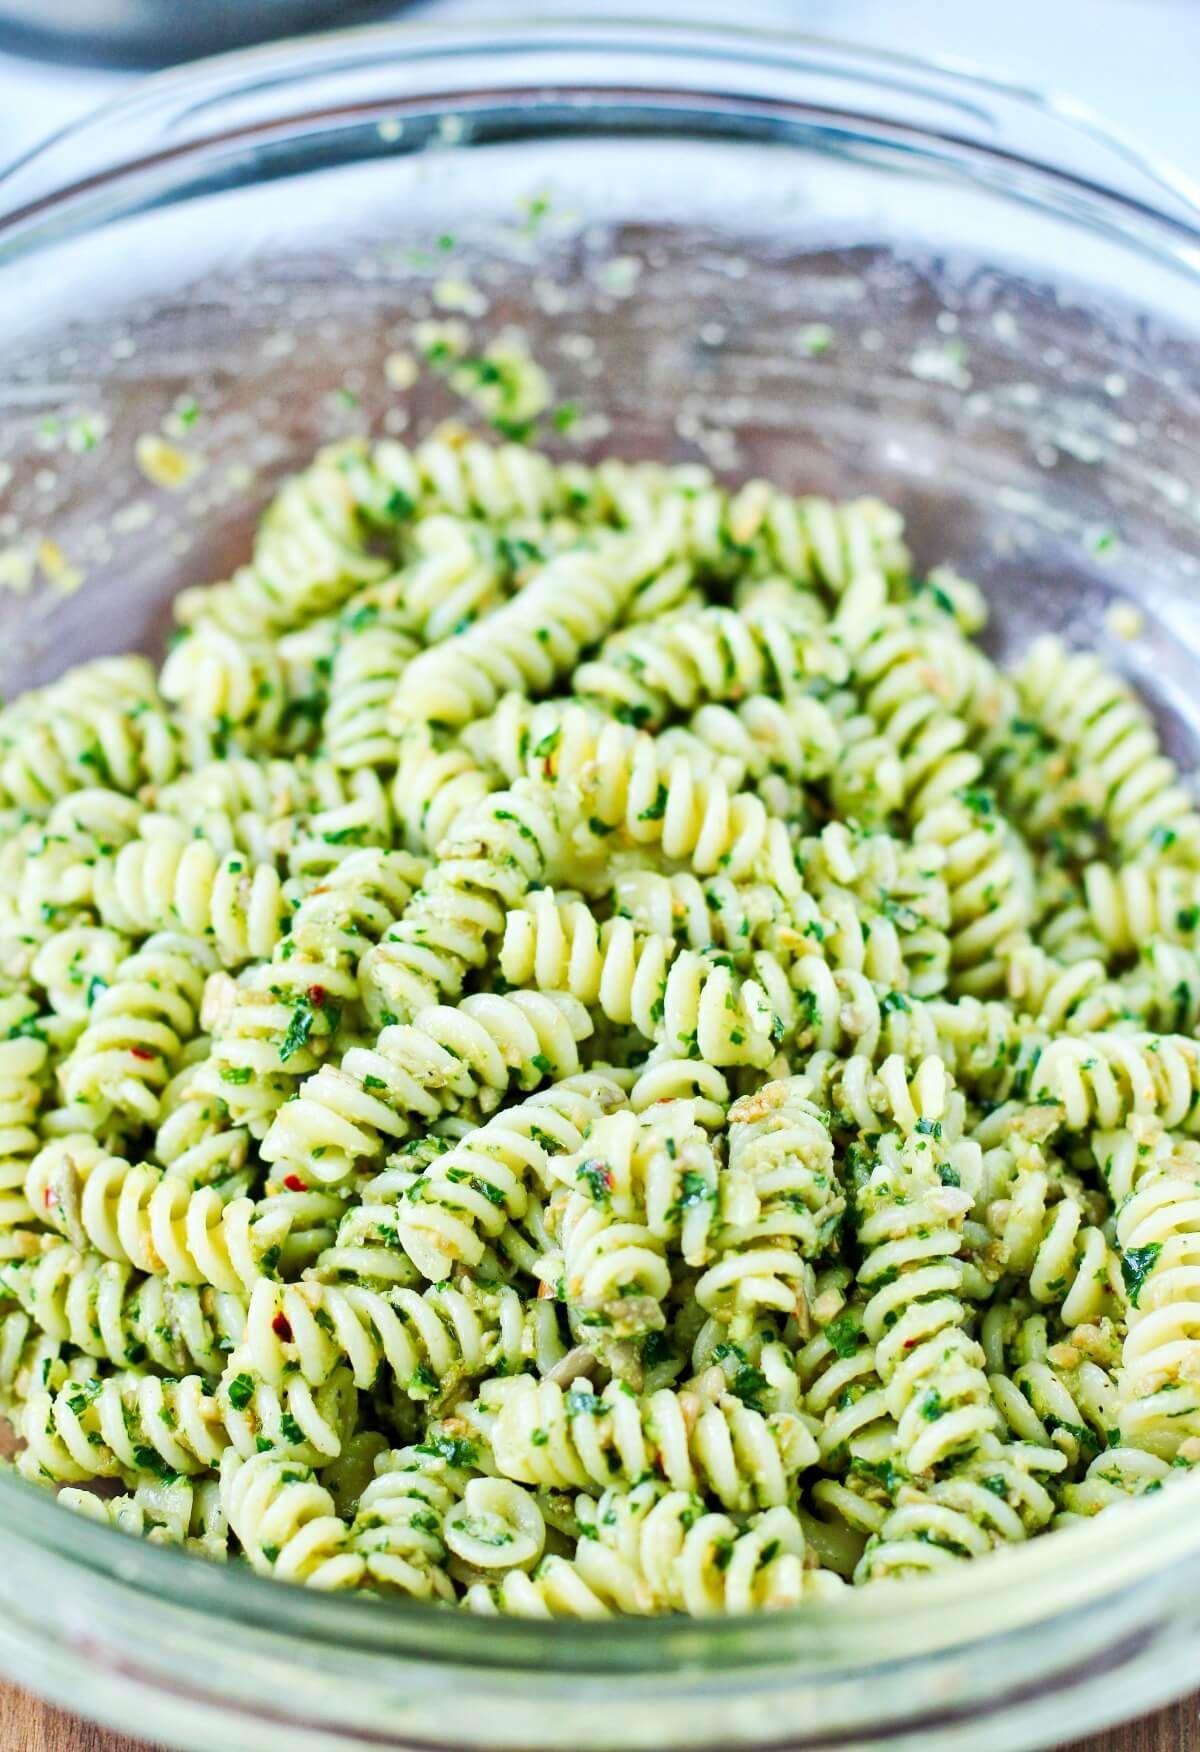 Pasta tossed in a sunflower seed dressing